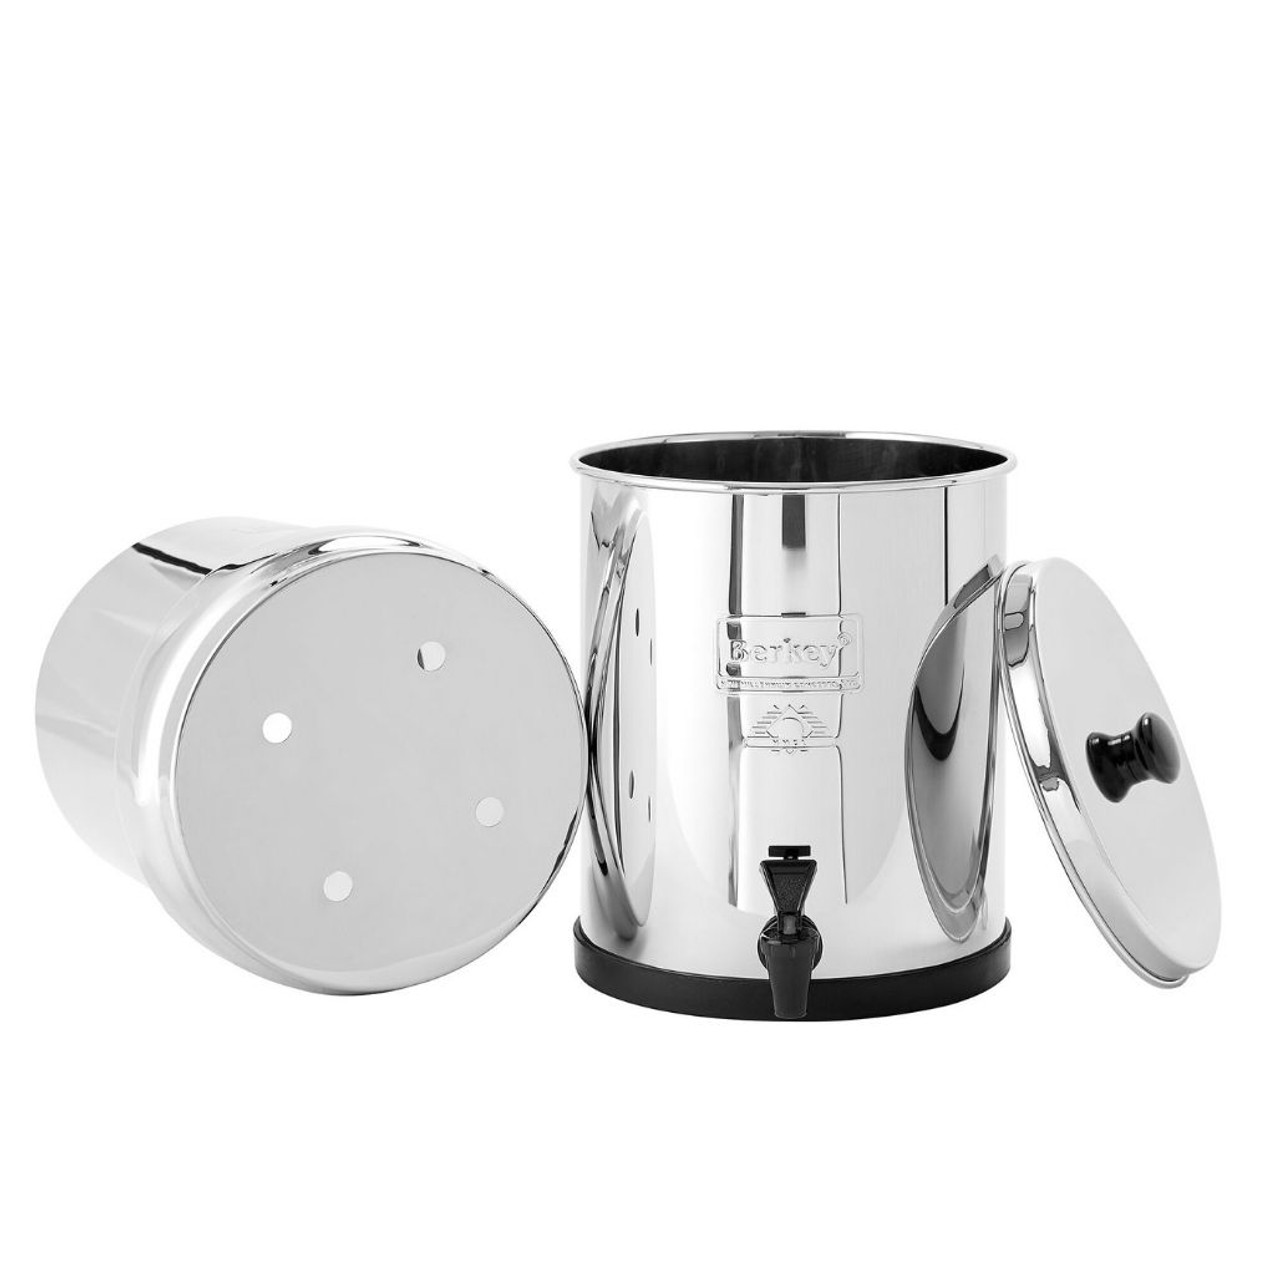 Big Berkey (2.25 gal) Water Purification System